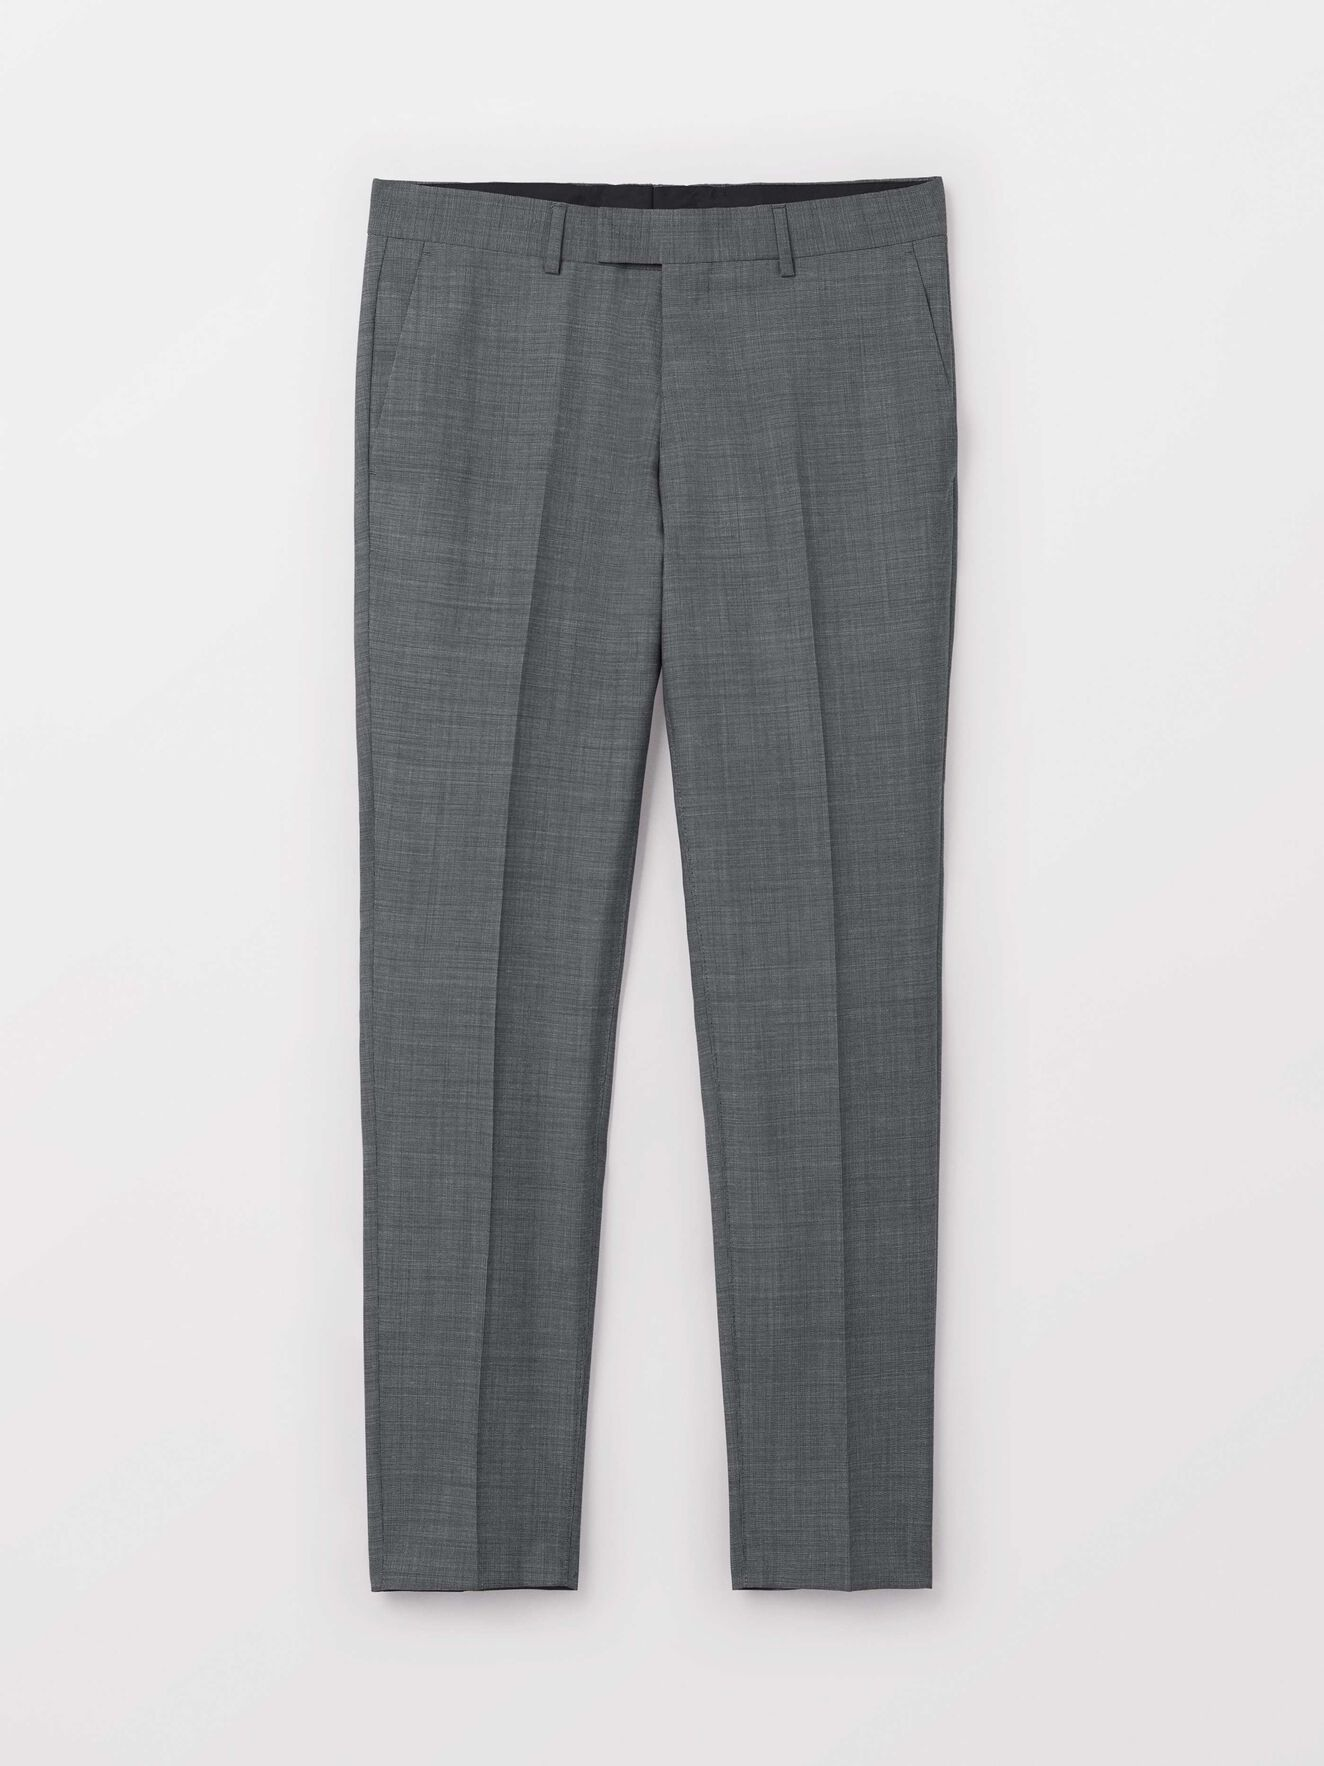 Tordon Hose in Dark grey Mel from Tiger of Sweden